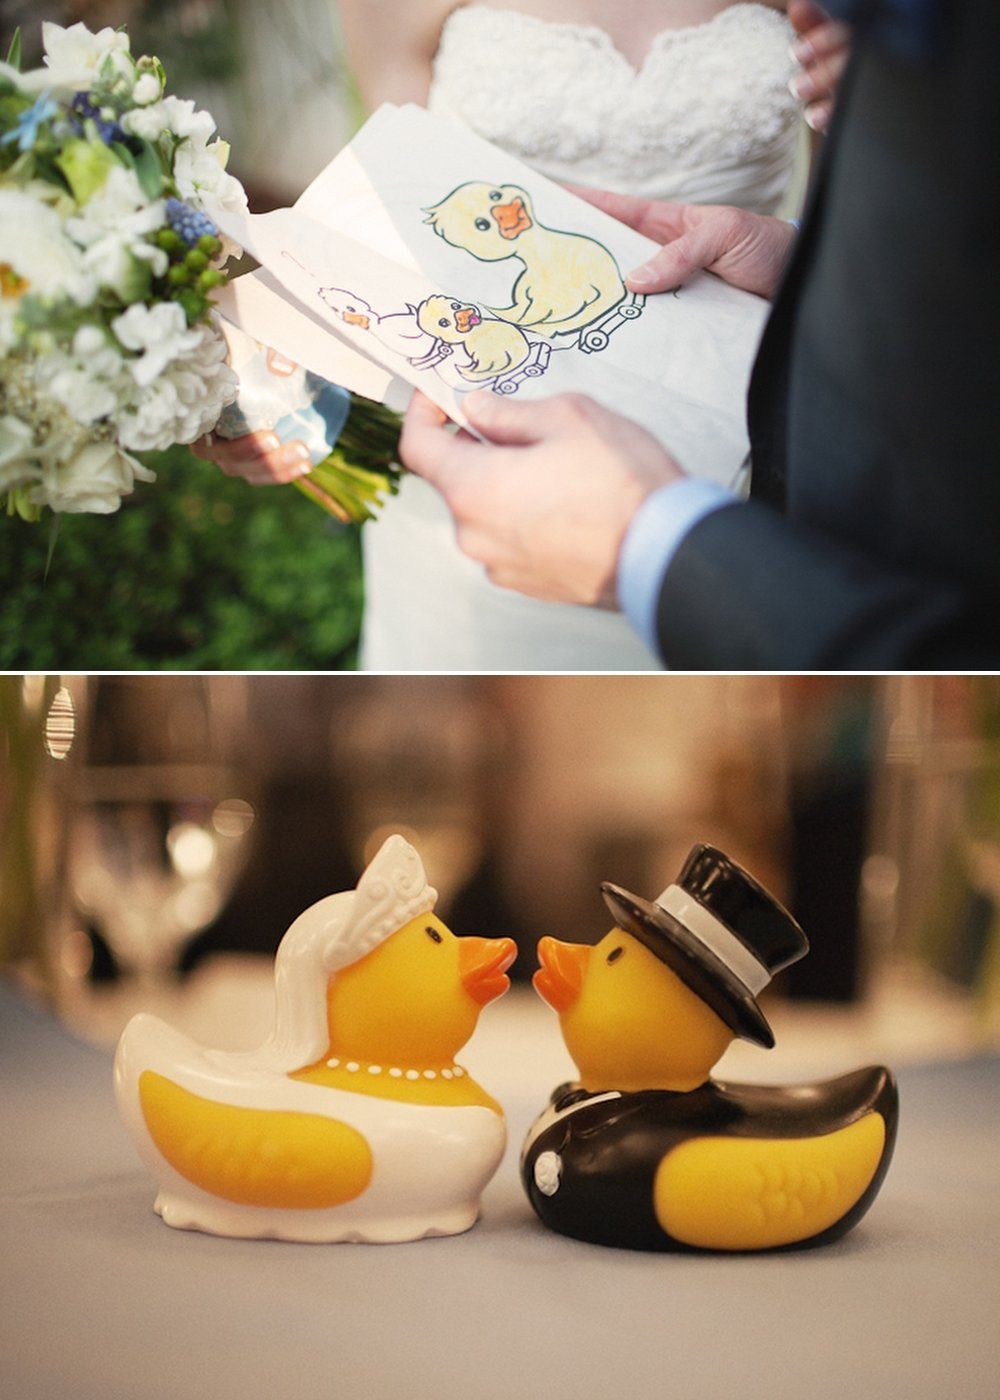 Real-wedding-rubber-duckie-themed-decor-romantic-bridal-bouquet.full